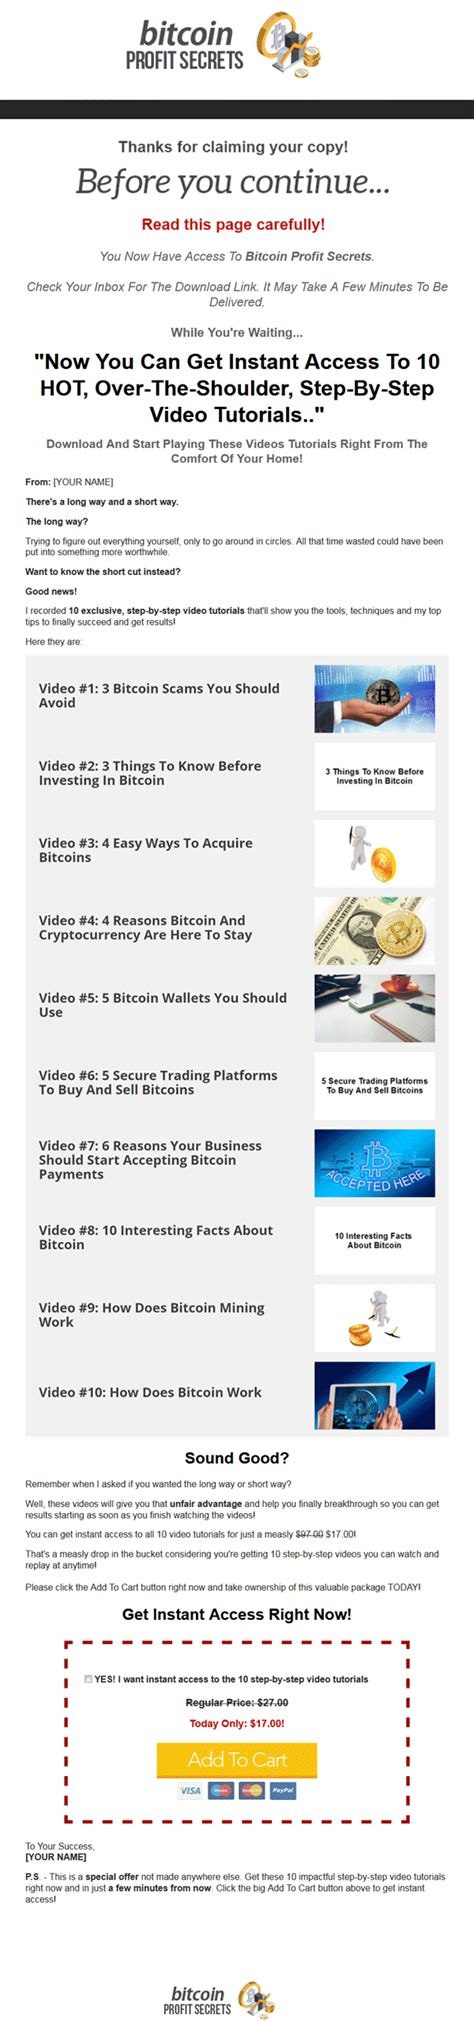 bitcoin profit bitcoin profit secrets ebook and with master resale